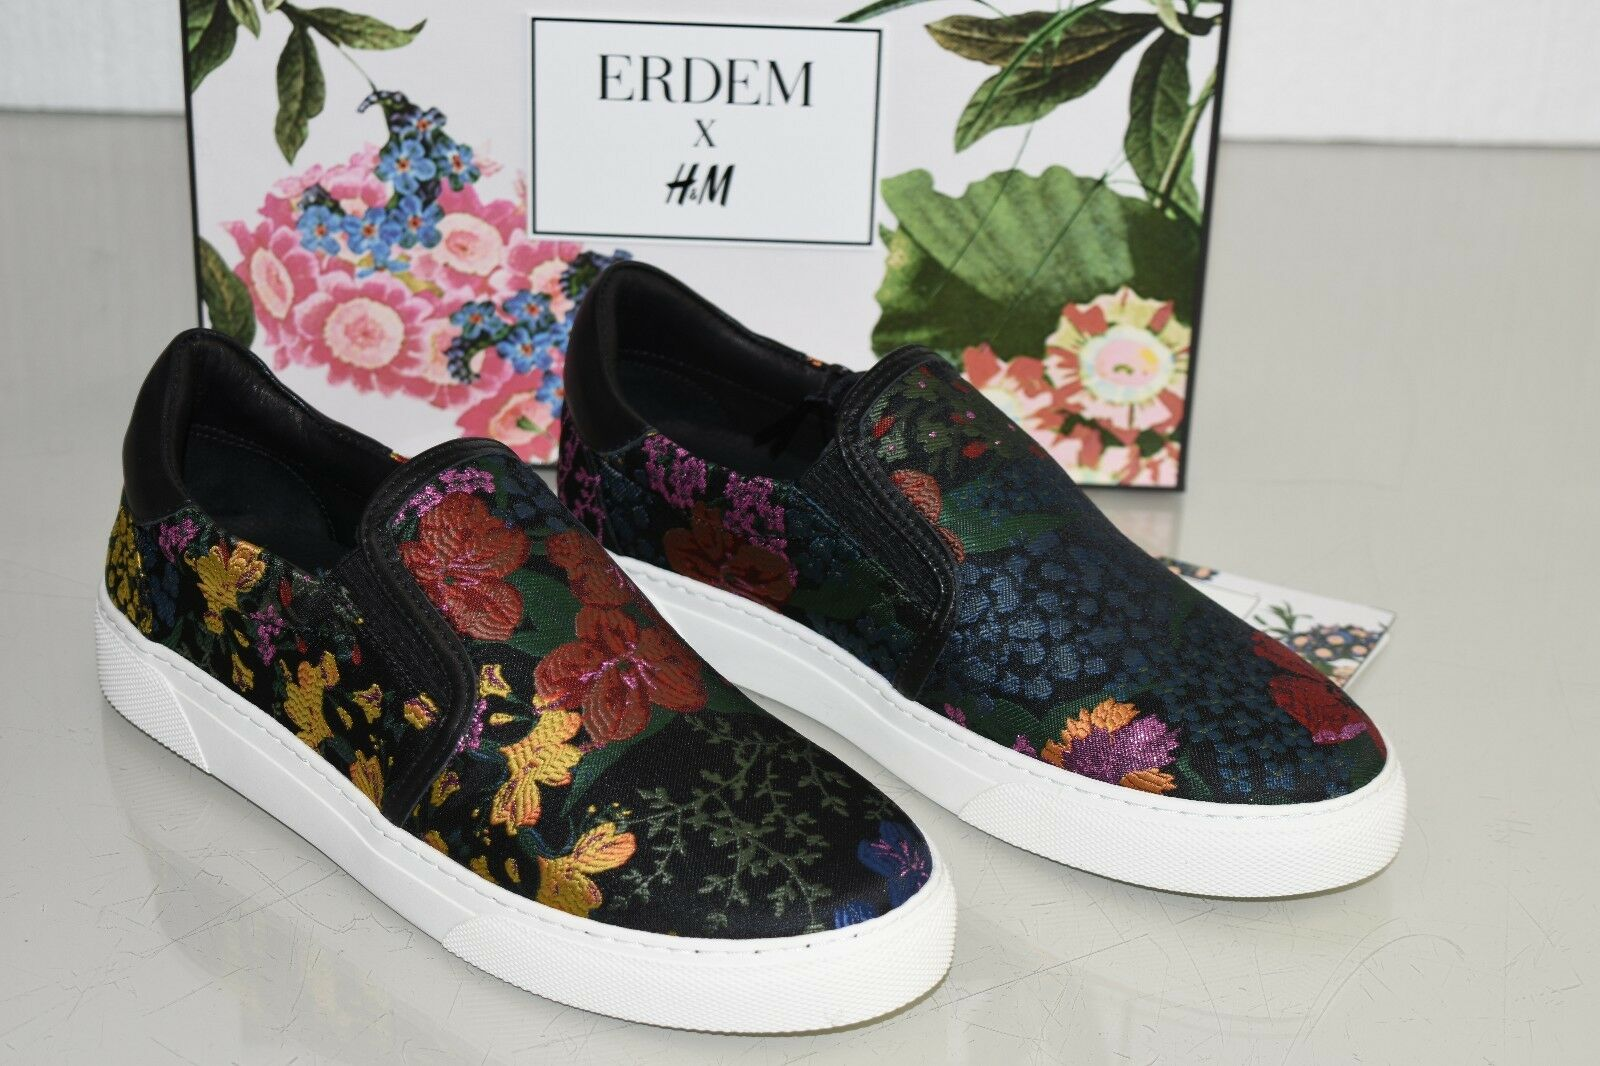 NEW Erdem x h&m Floral Slip On Black Navy Jacquard Sports shoes 8 ship